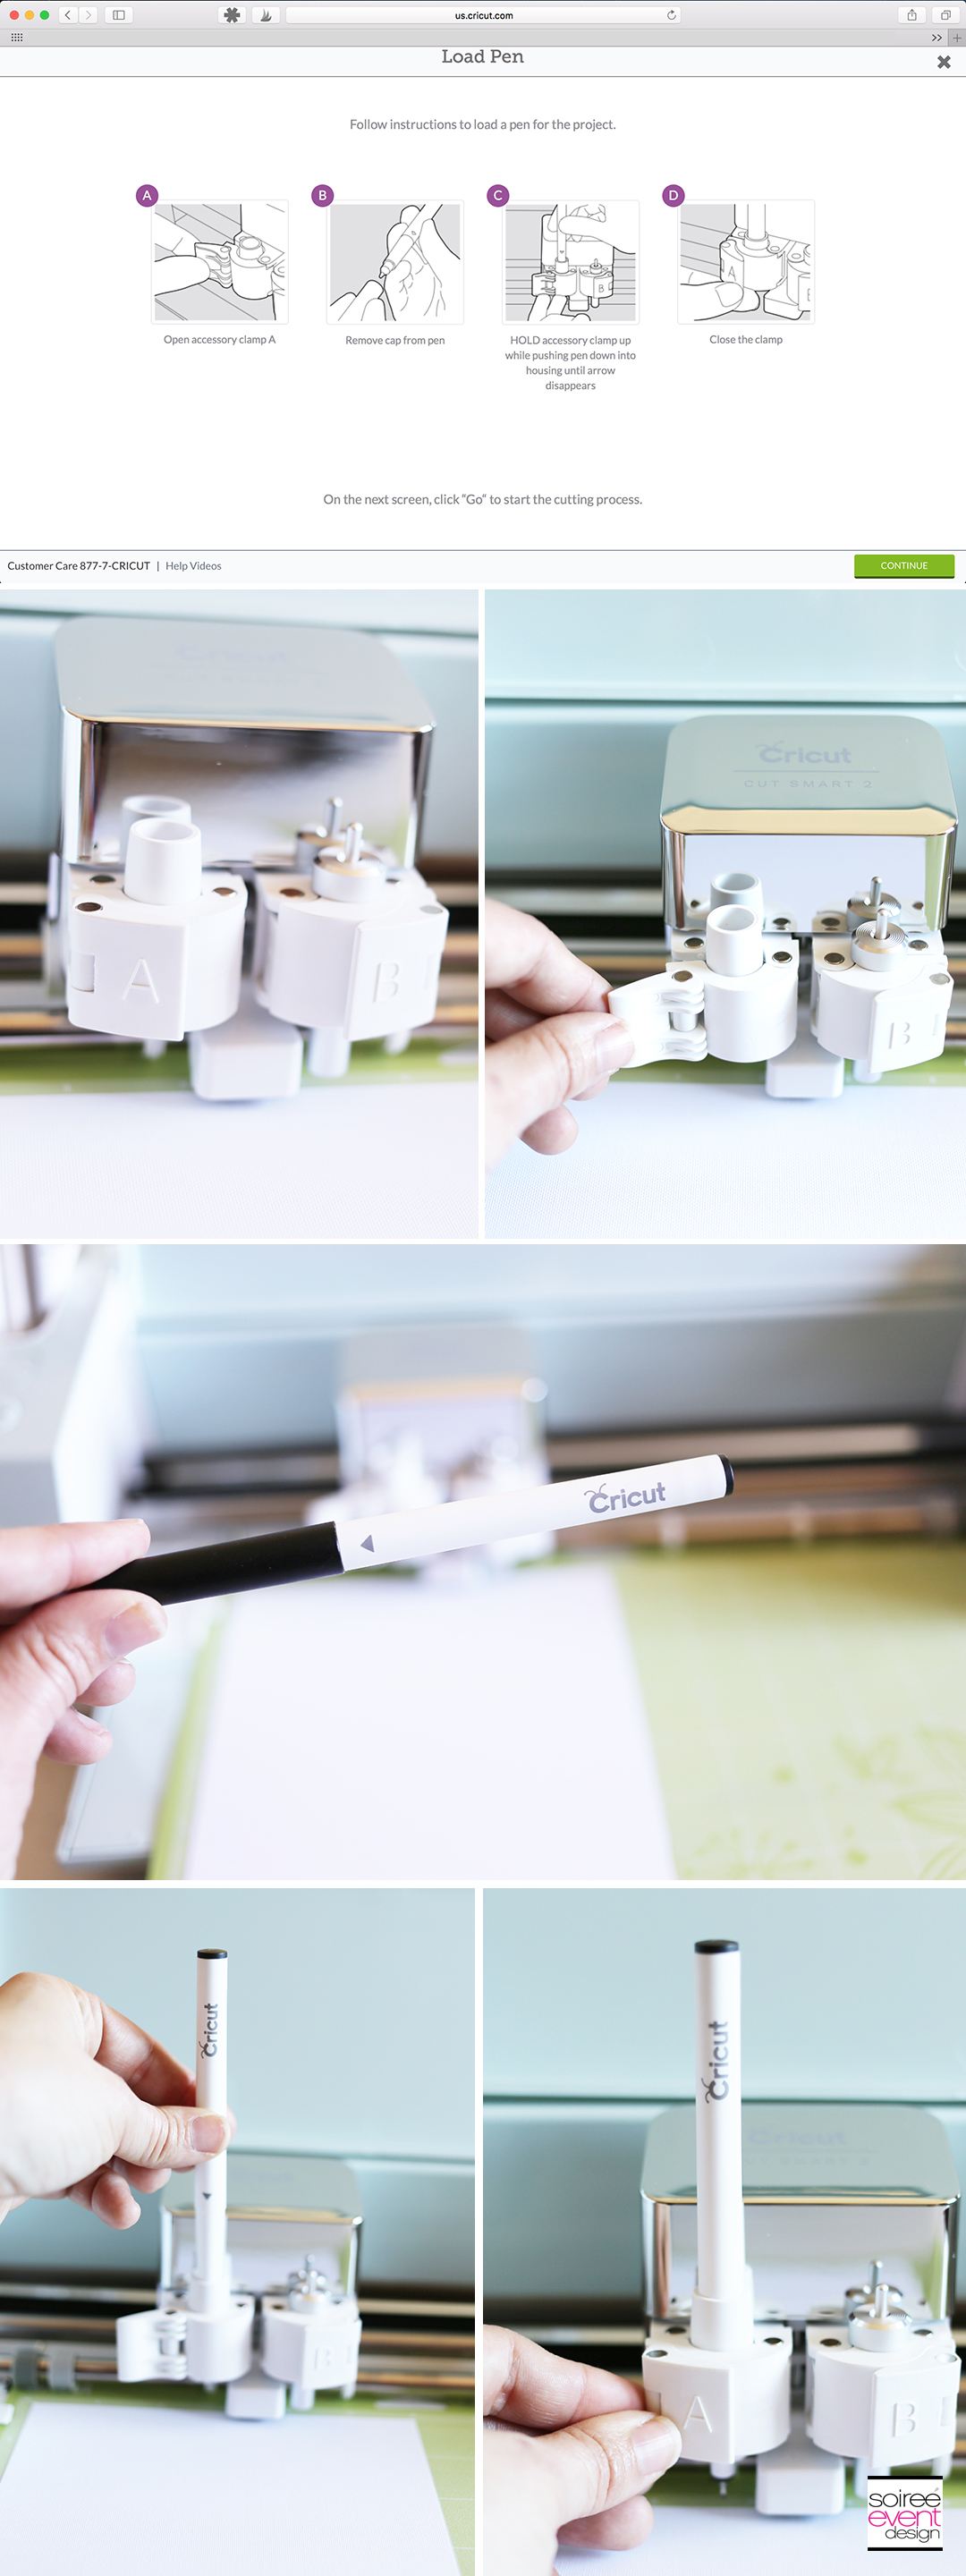 Make a Card with the Cricut Explore Air 2 - Step 3